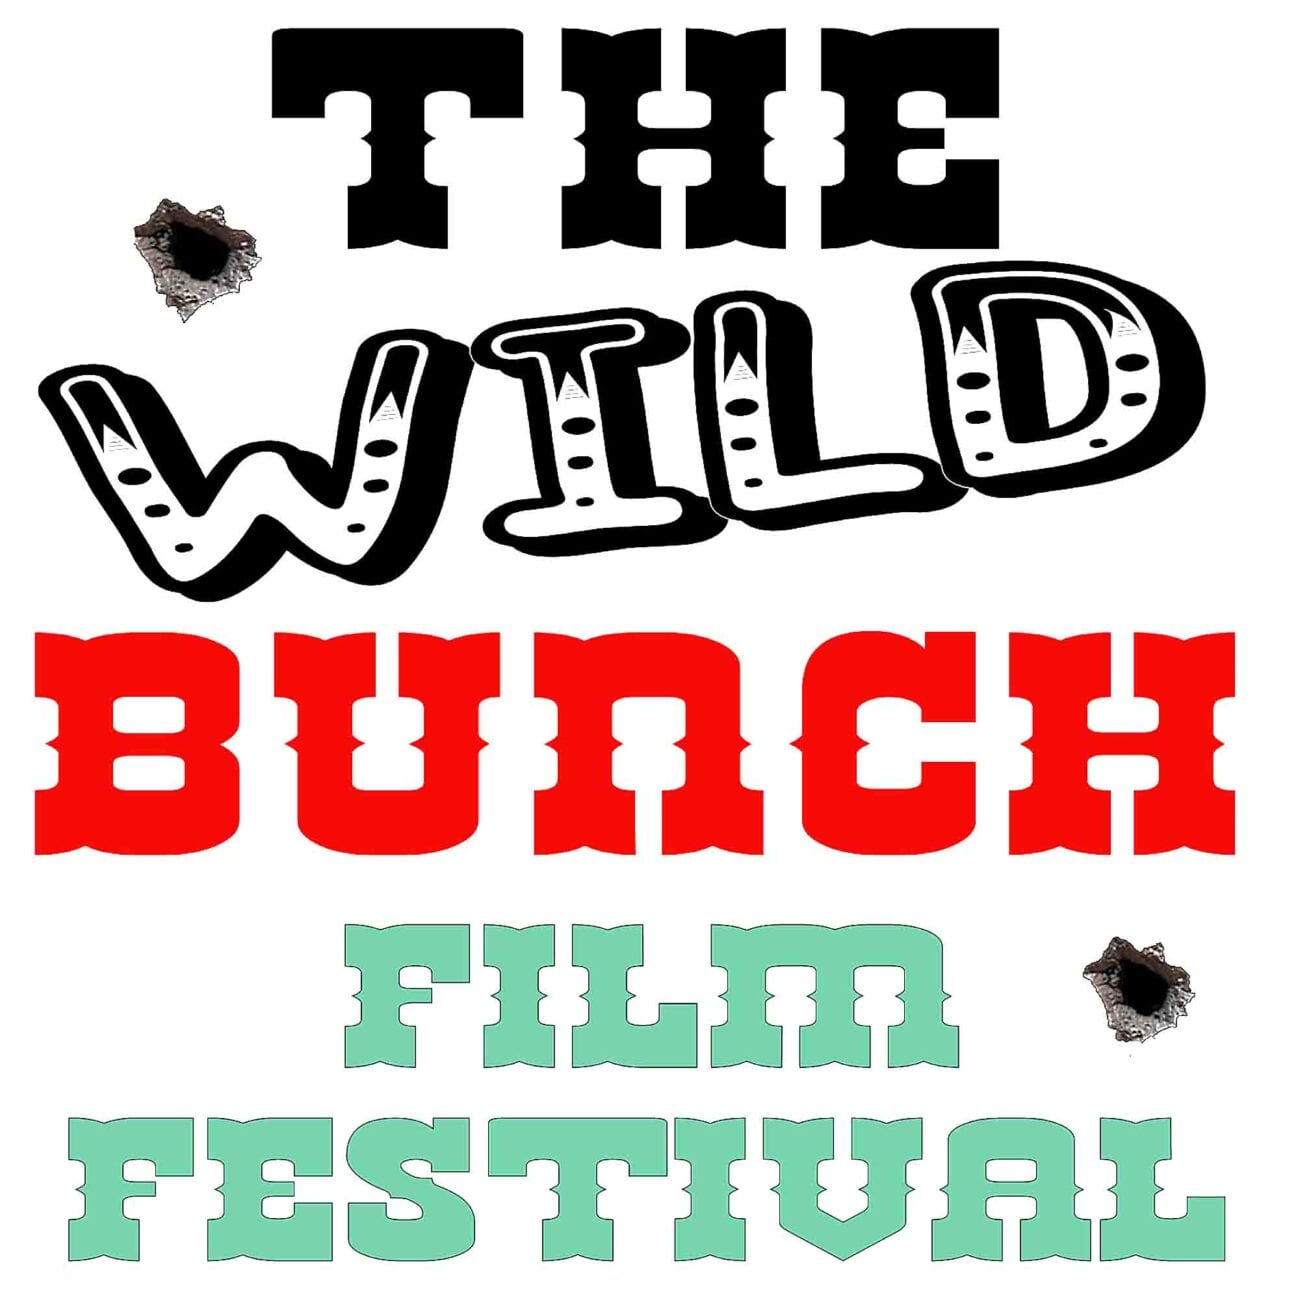 The Wild Bunch Film Festival is an international event celebrating western movies and their creators. Here's all the information you need.